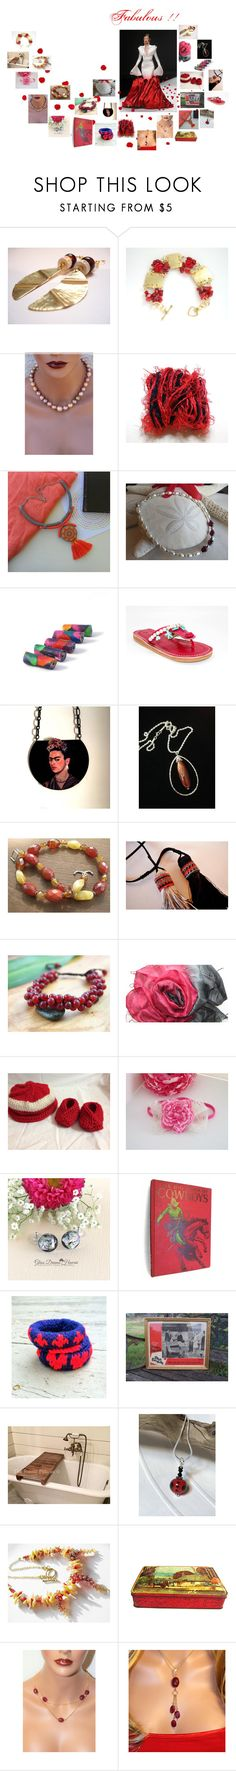 """Fabulous !!"" by zebacreations ❤ liked on Polyvore"